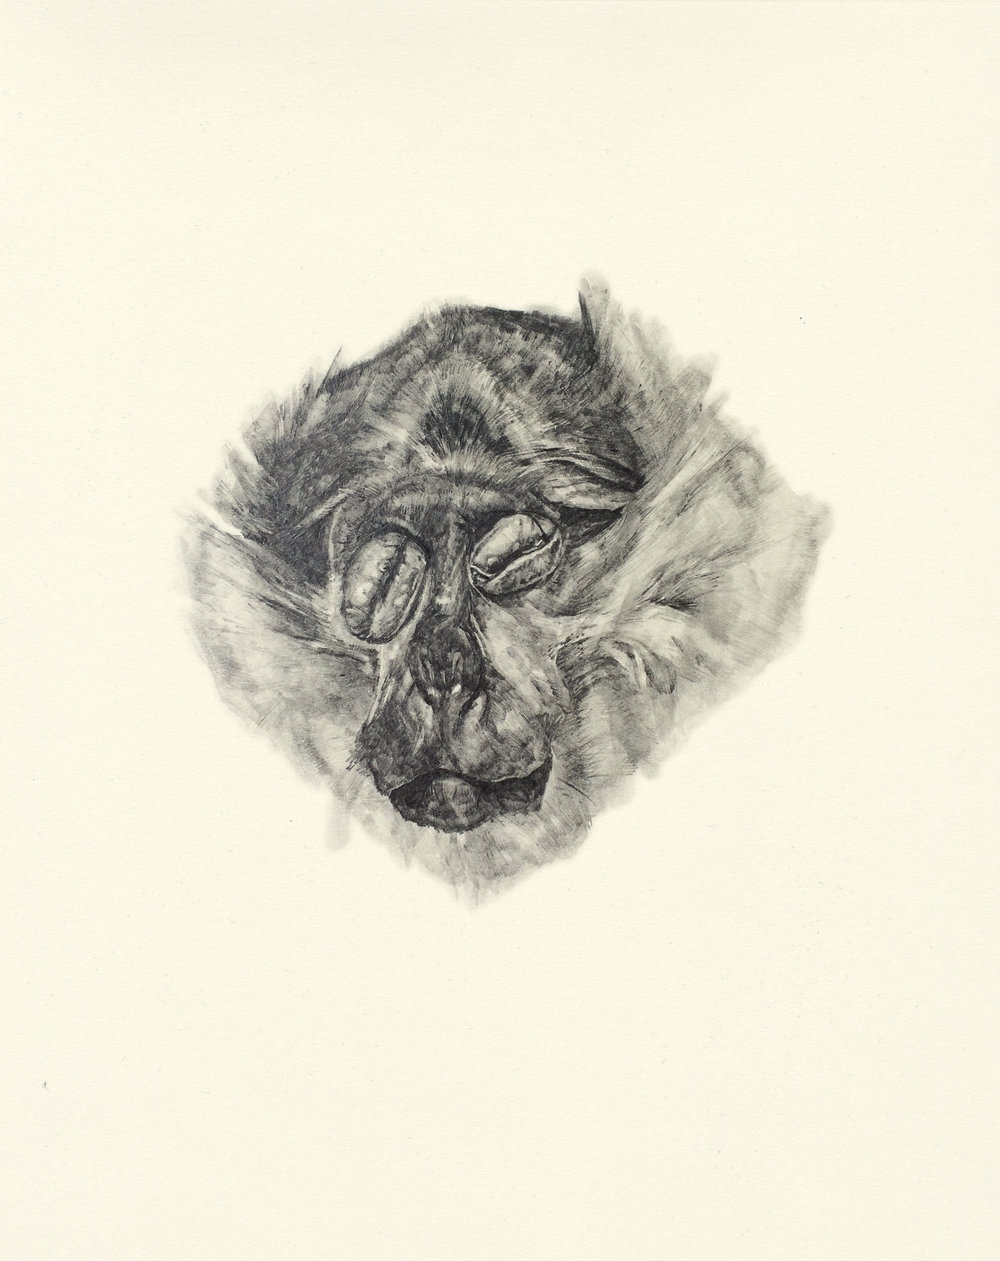 My Boyfriend is a Peacekeeper xxix  | graphite on paper | 9.5INx12IN    Excerpt from My Boyfriend is a Peacekeeper Book ii : I always wondered about the monotony of dismemberment. I think you can tell a lot about us by how we treat animals.